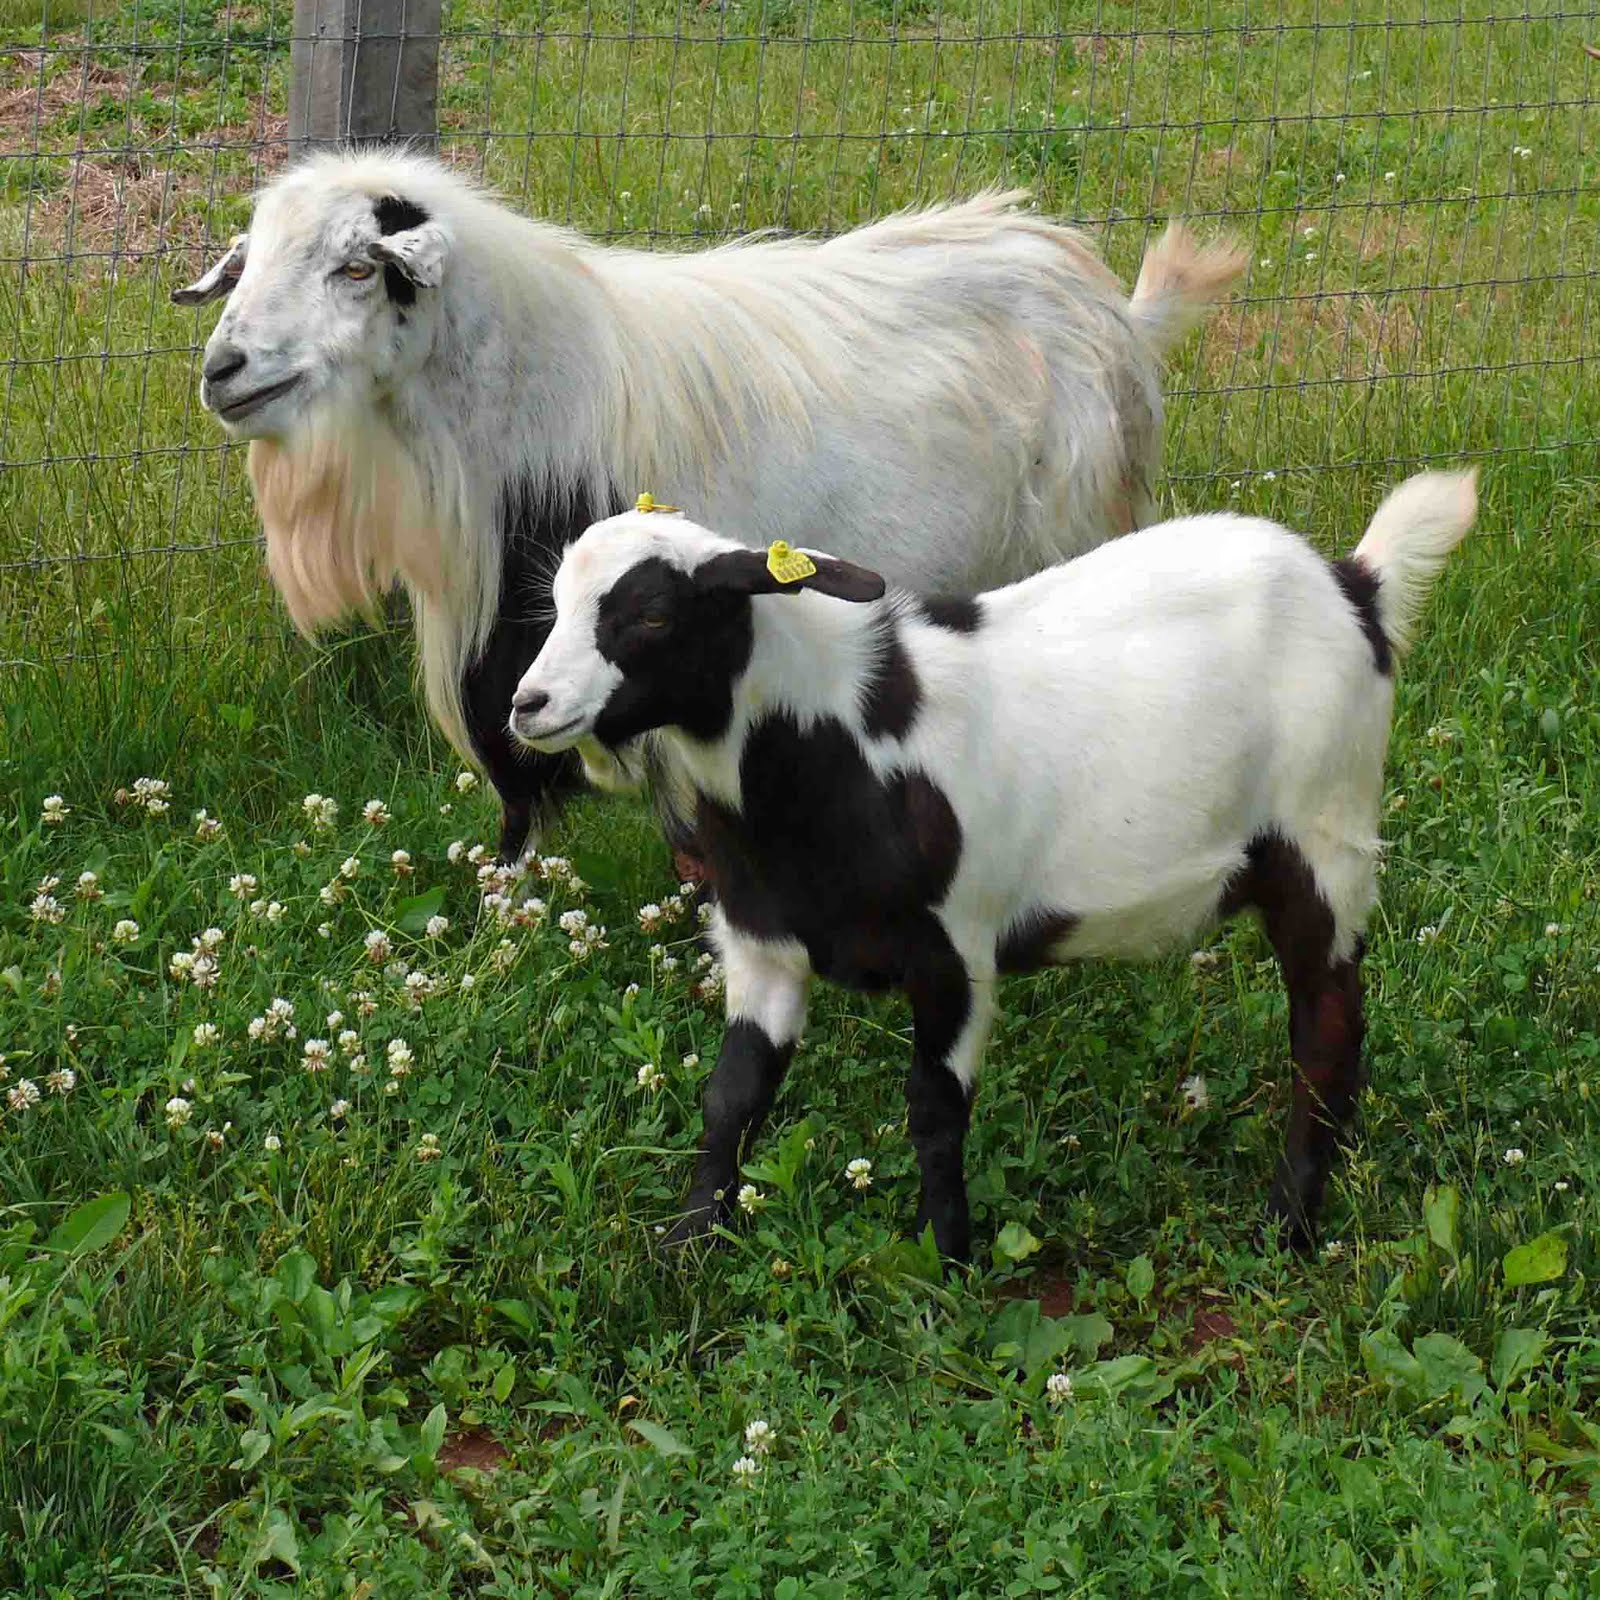 15 Famous Goat Breeds To Raise For Milk, Meat And Fleece ... on goat barns, goat fence panels, goat ranch in the us, goat farm, goat shelter, goat playground, goat blankets, goat pens, goat of america, goat tower, goat vaccine schedule, goat skinning machine, goat fencing, goat housing, goat on camel, shed plans, goat farming business plan, goat houses hutches,